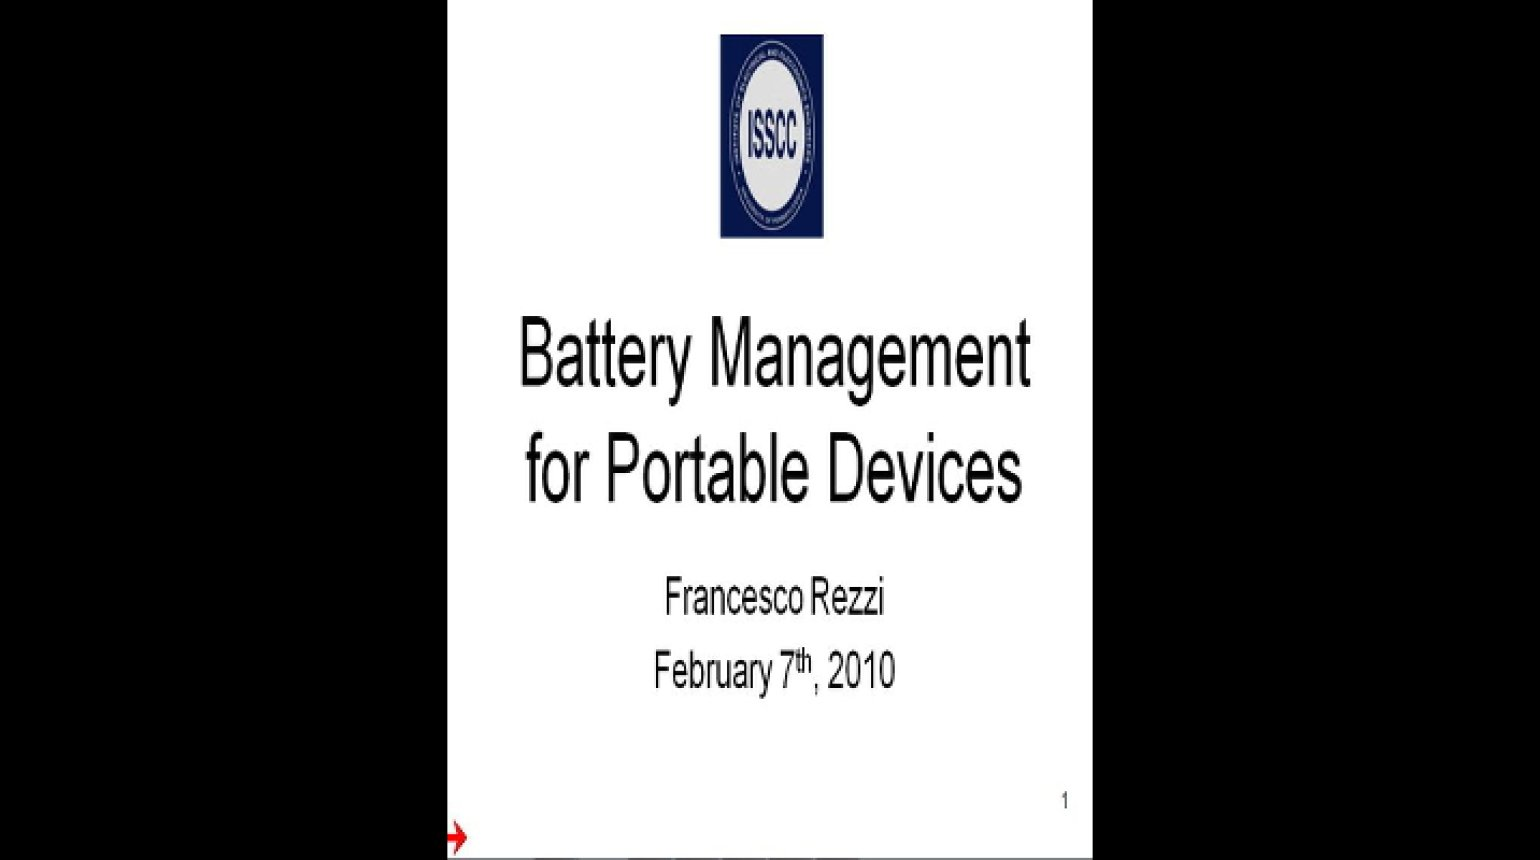 Battery Management for Portable Devices Video